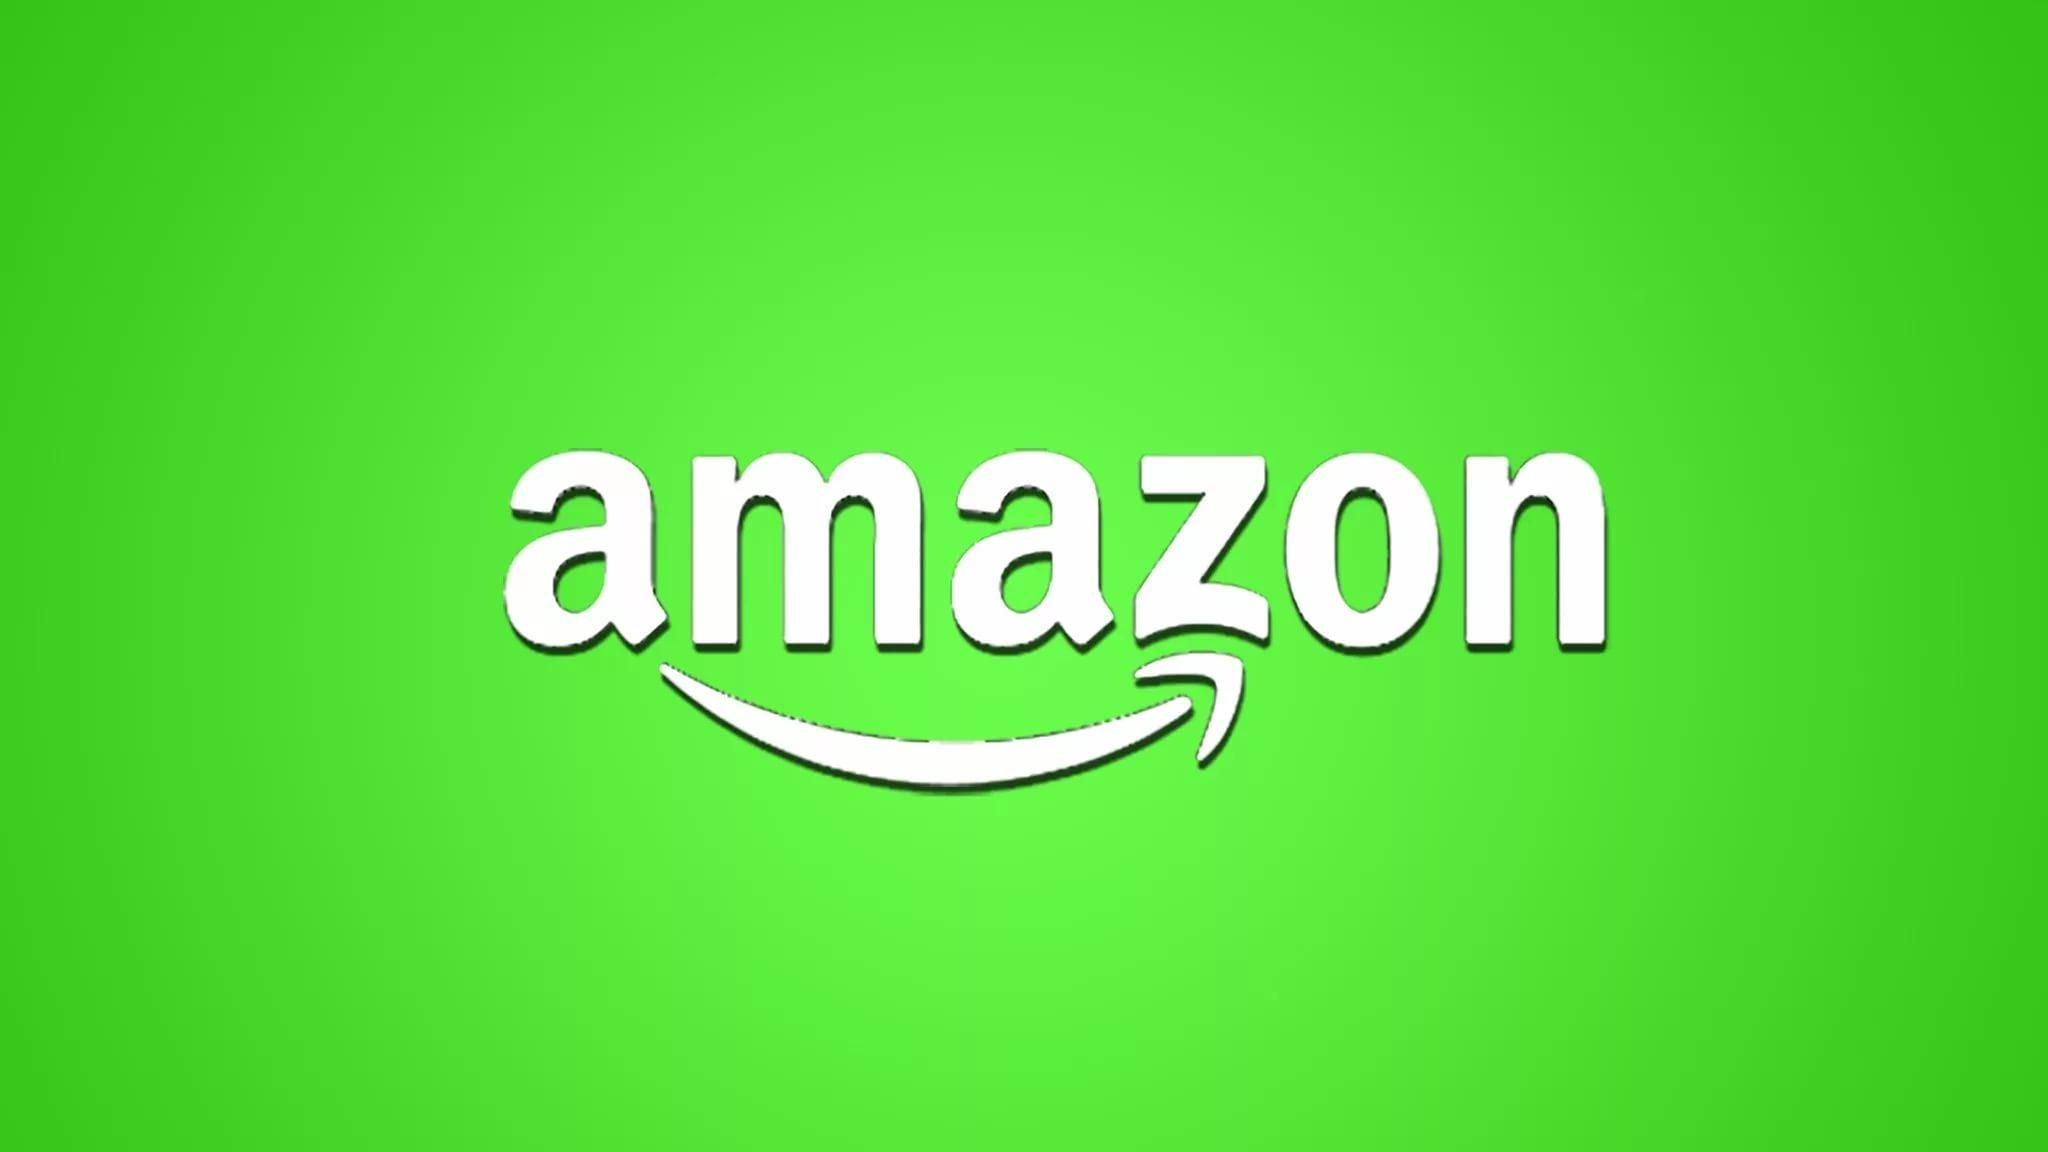 amazon wallpaper photo